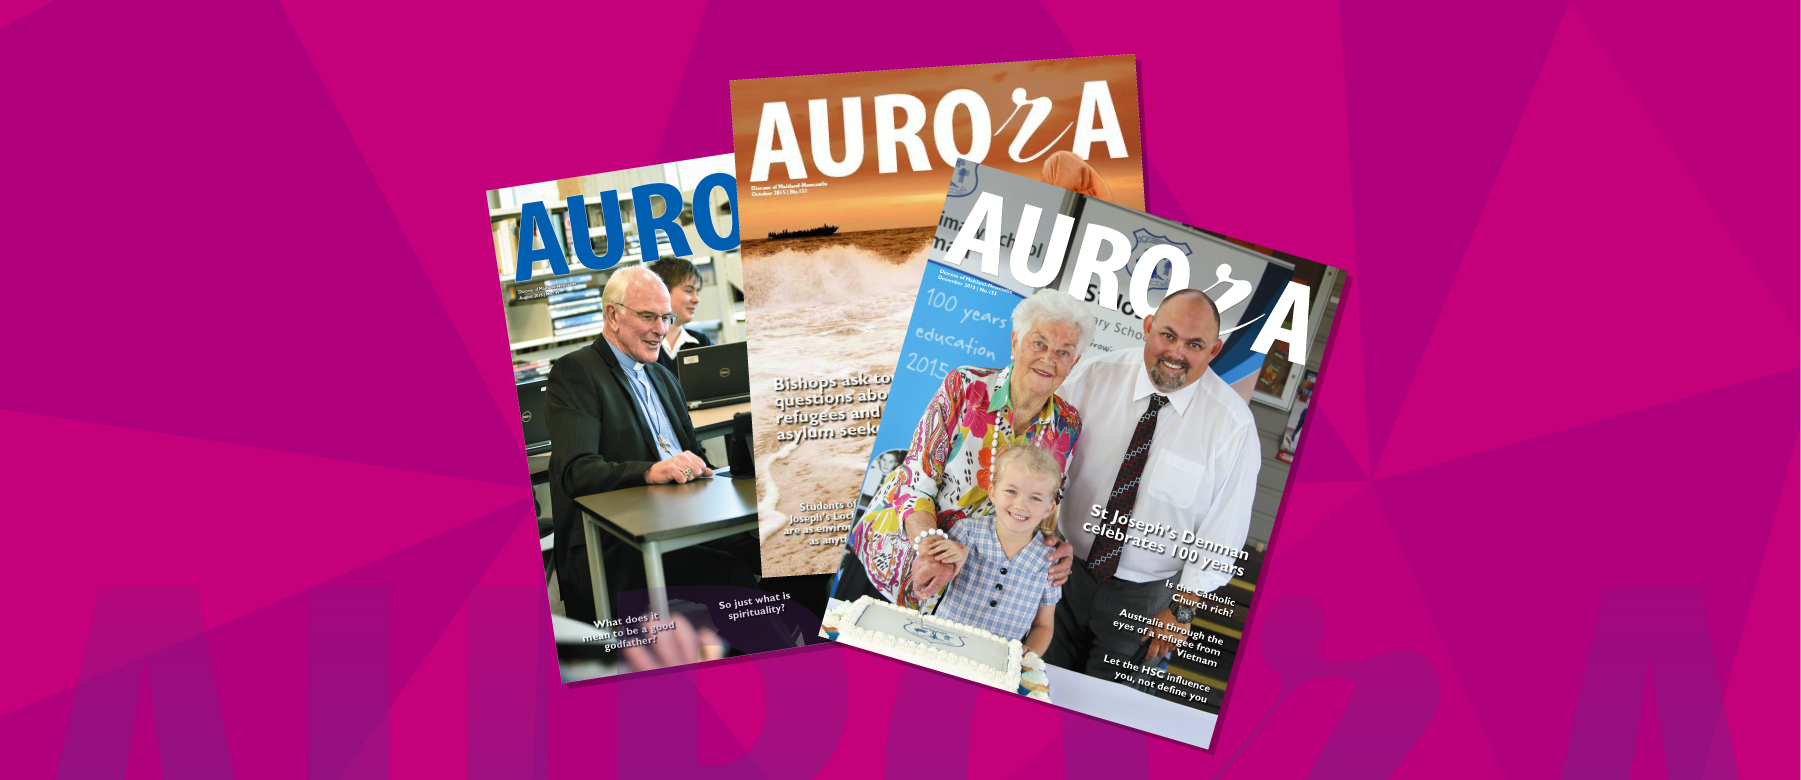 Exciting change this year to the awarding-winning Aurora